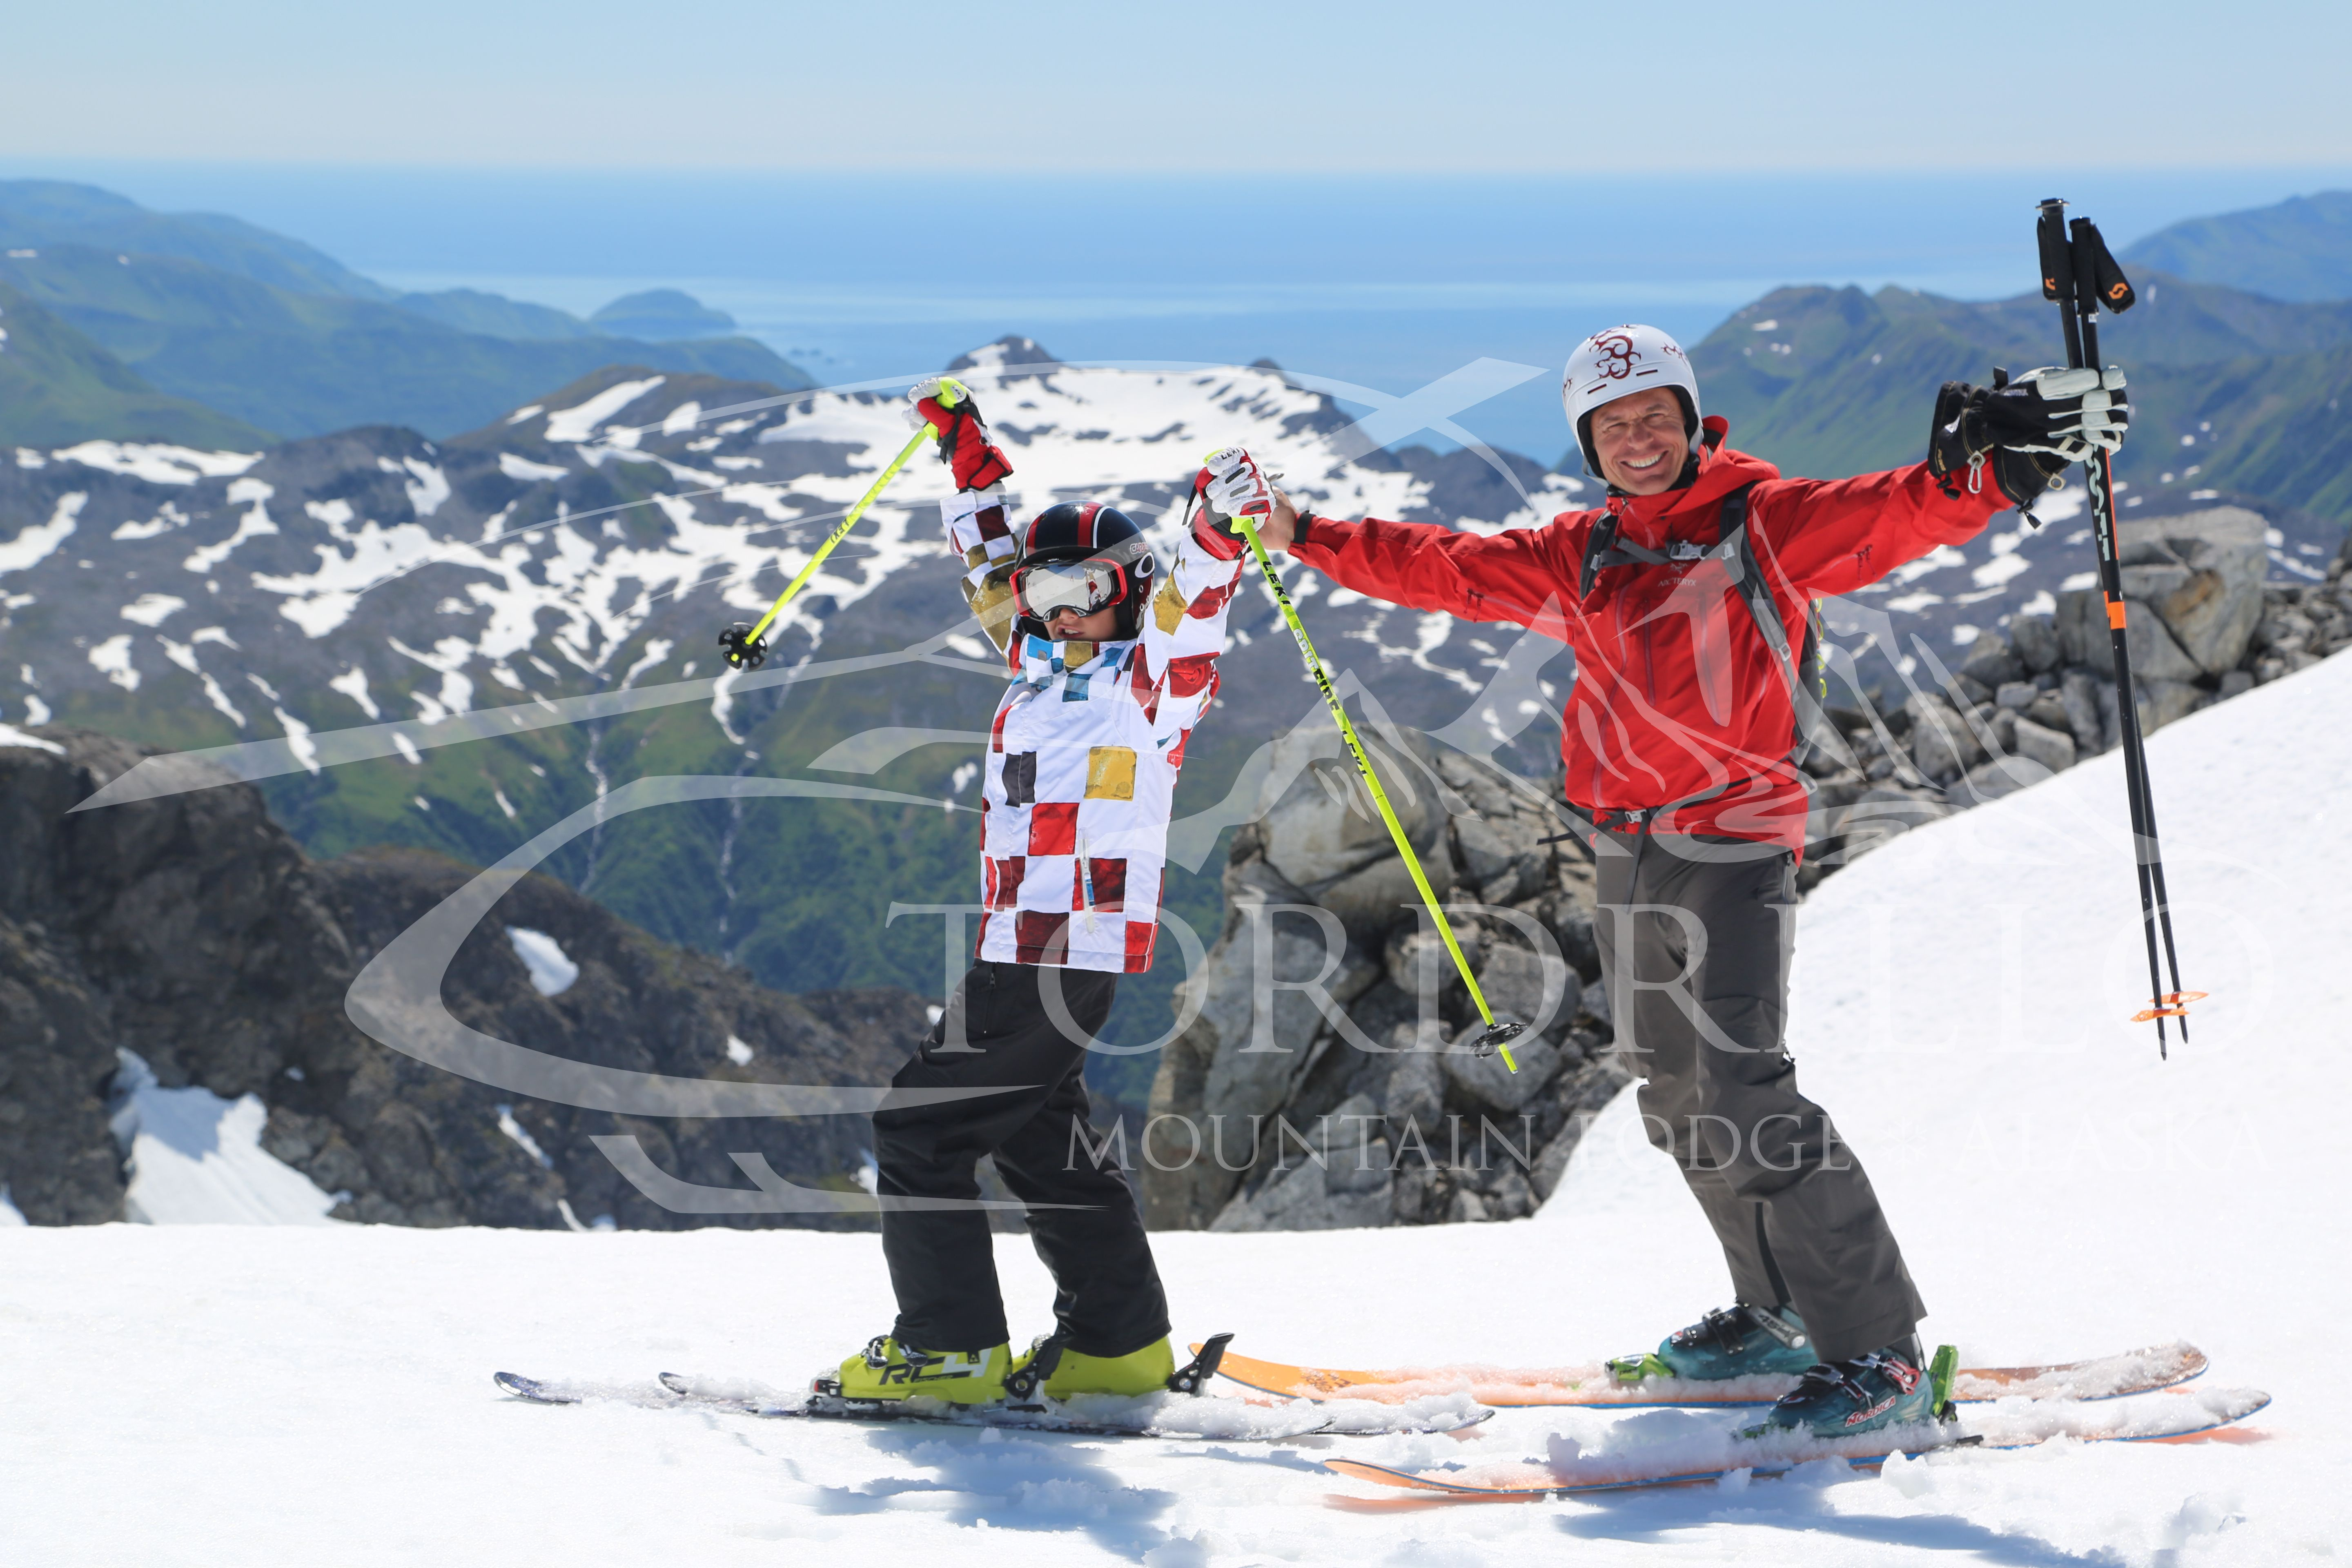 The Most Fun You Ll Have All Year Is Heli Skiing With The Tordrillo Mountain Lodge Crew Heliskiing Alaska Luxury Outdoor Tours Heli Skiing Mountain Lodge